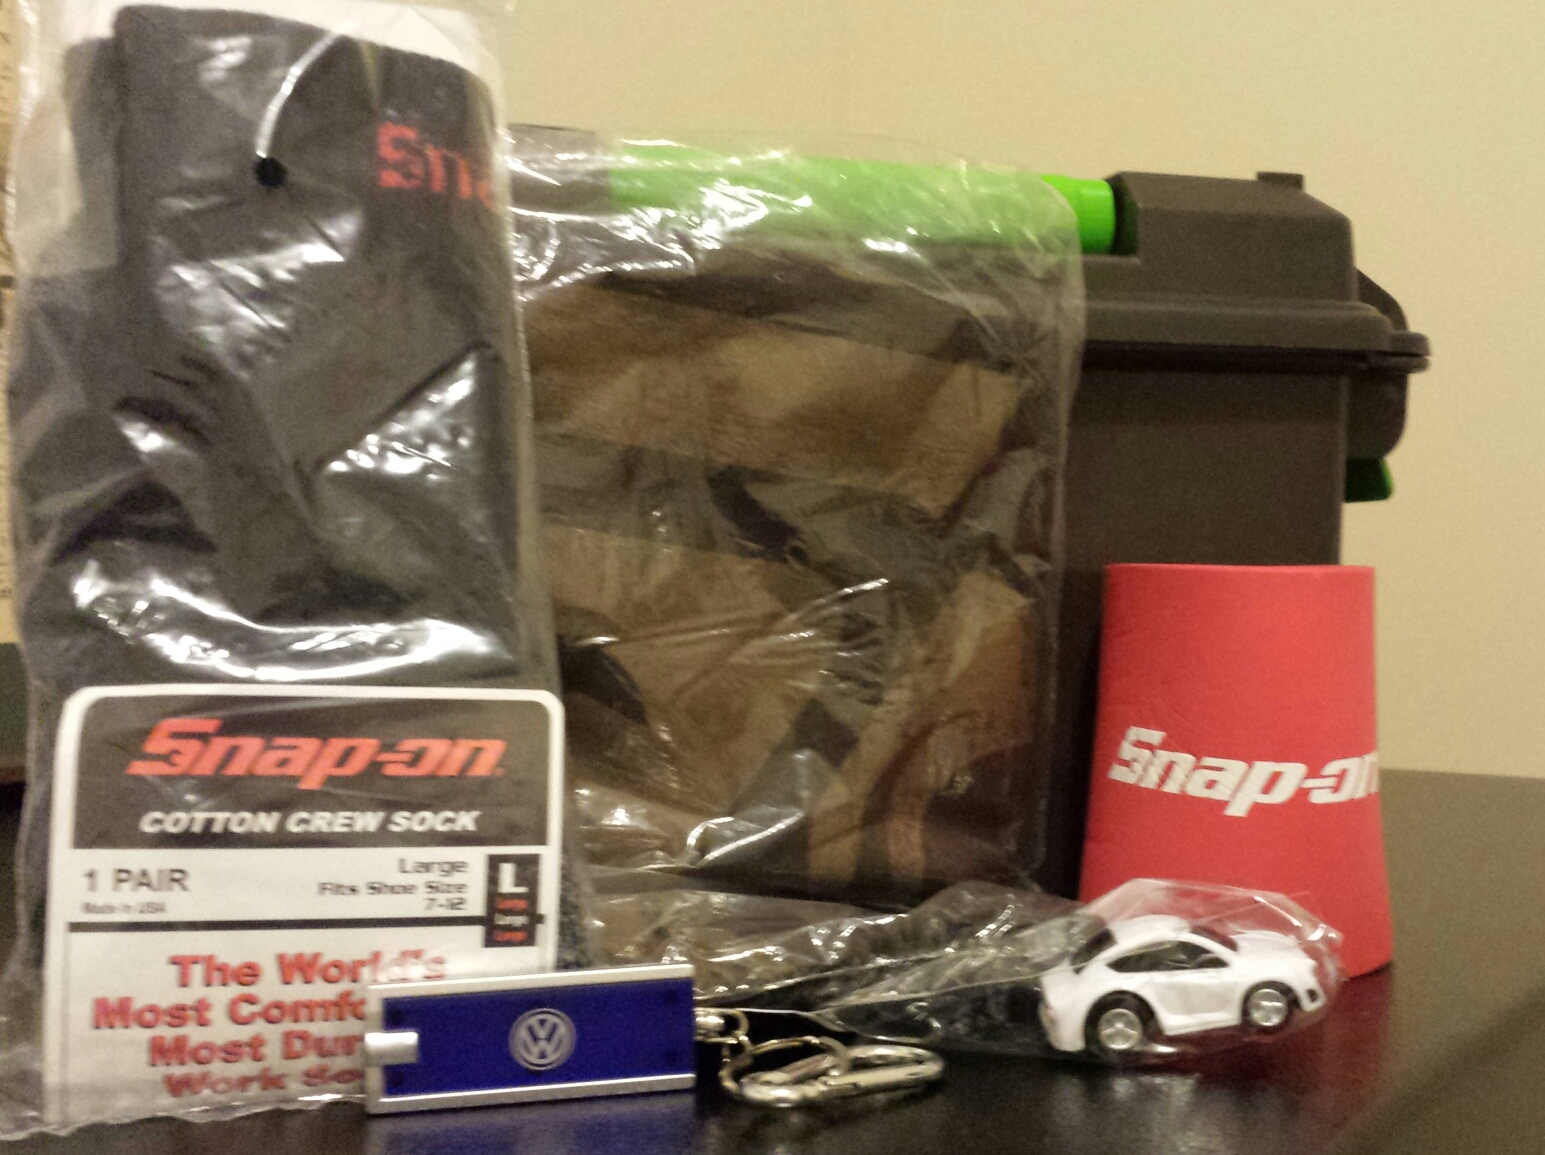 Snap on giveaway